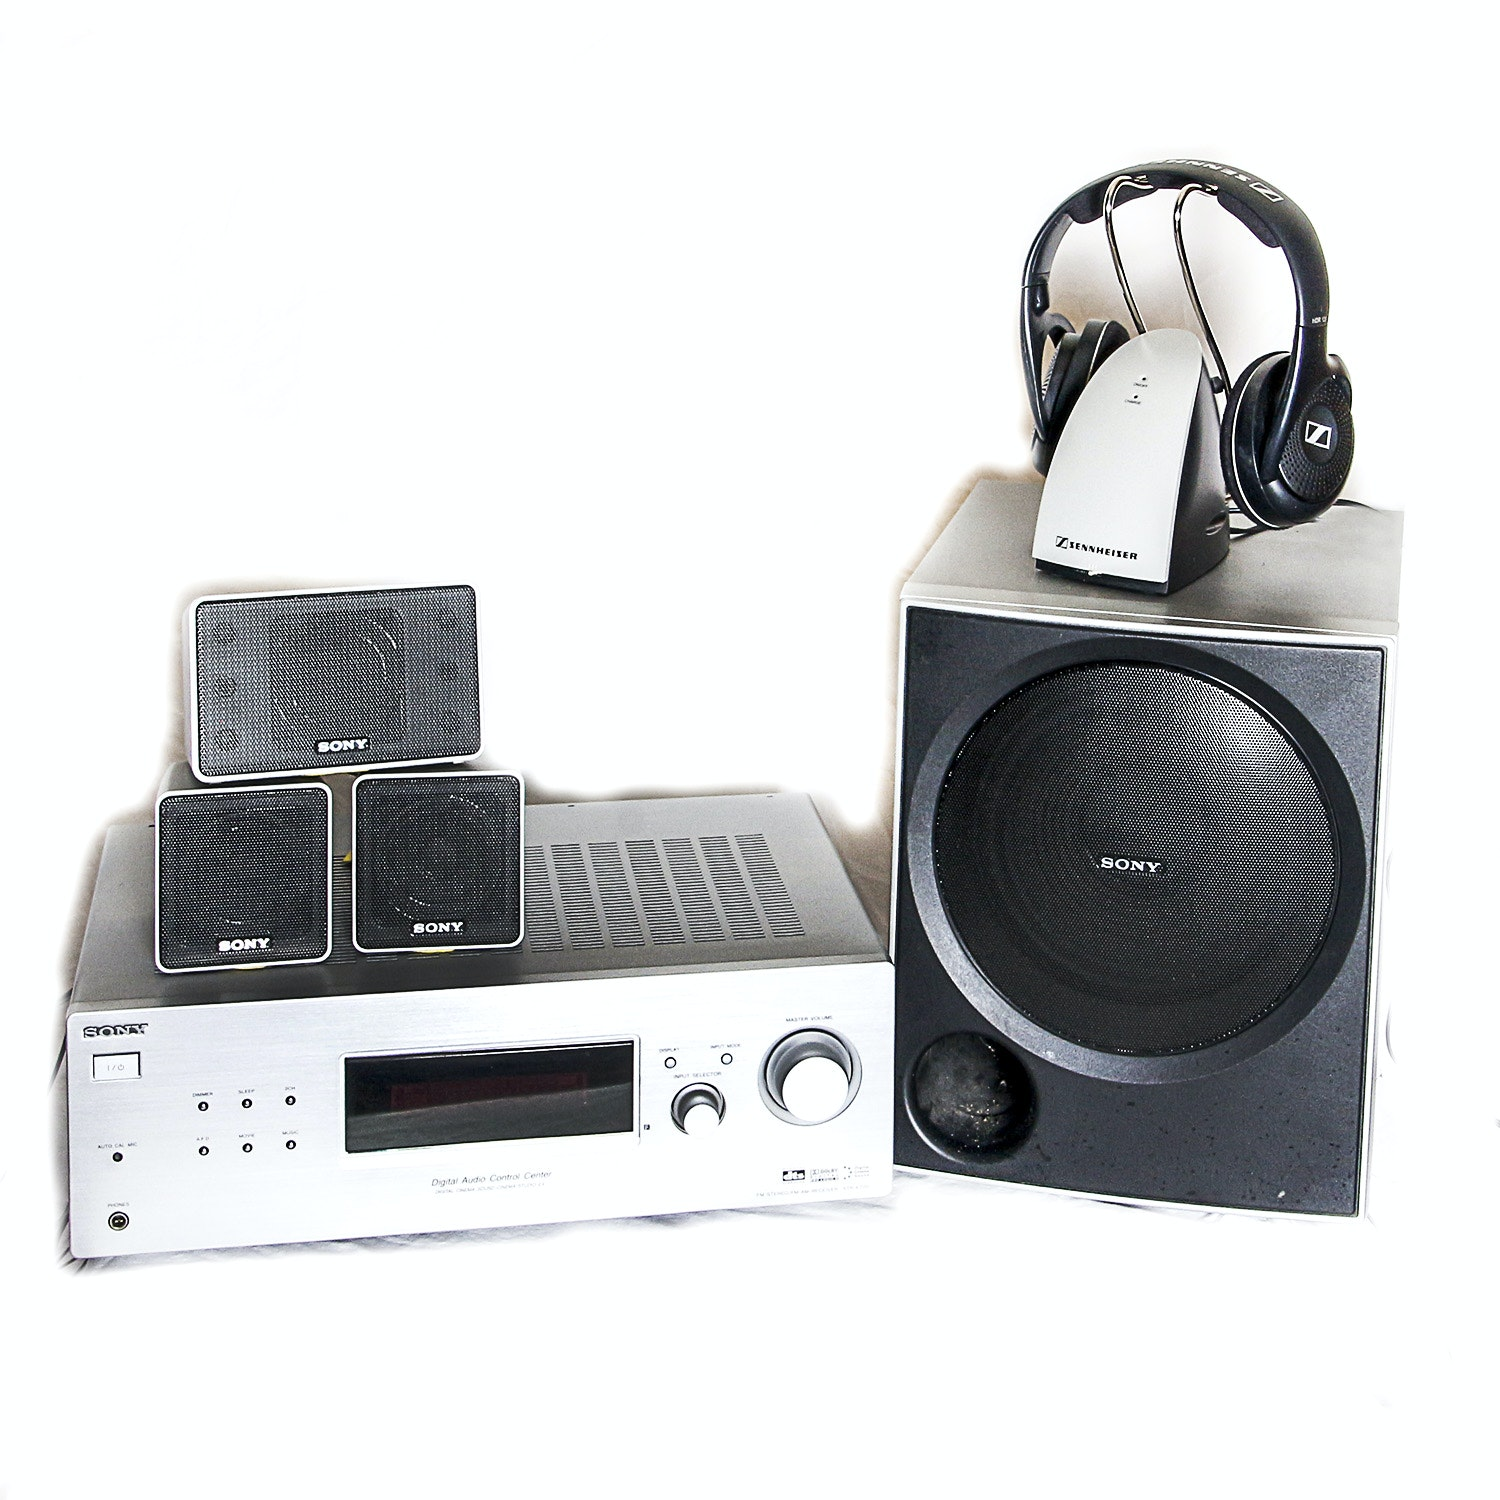 Sony and Sennheiser Electronics and Headphones